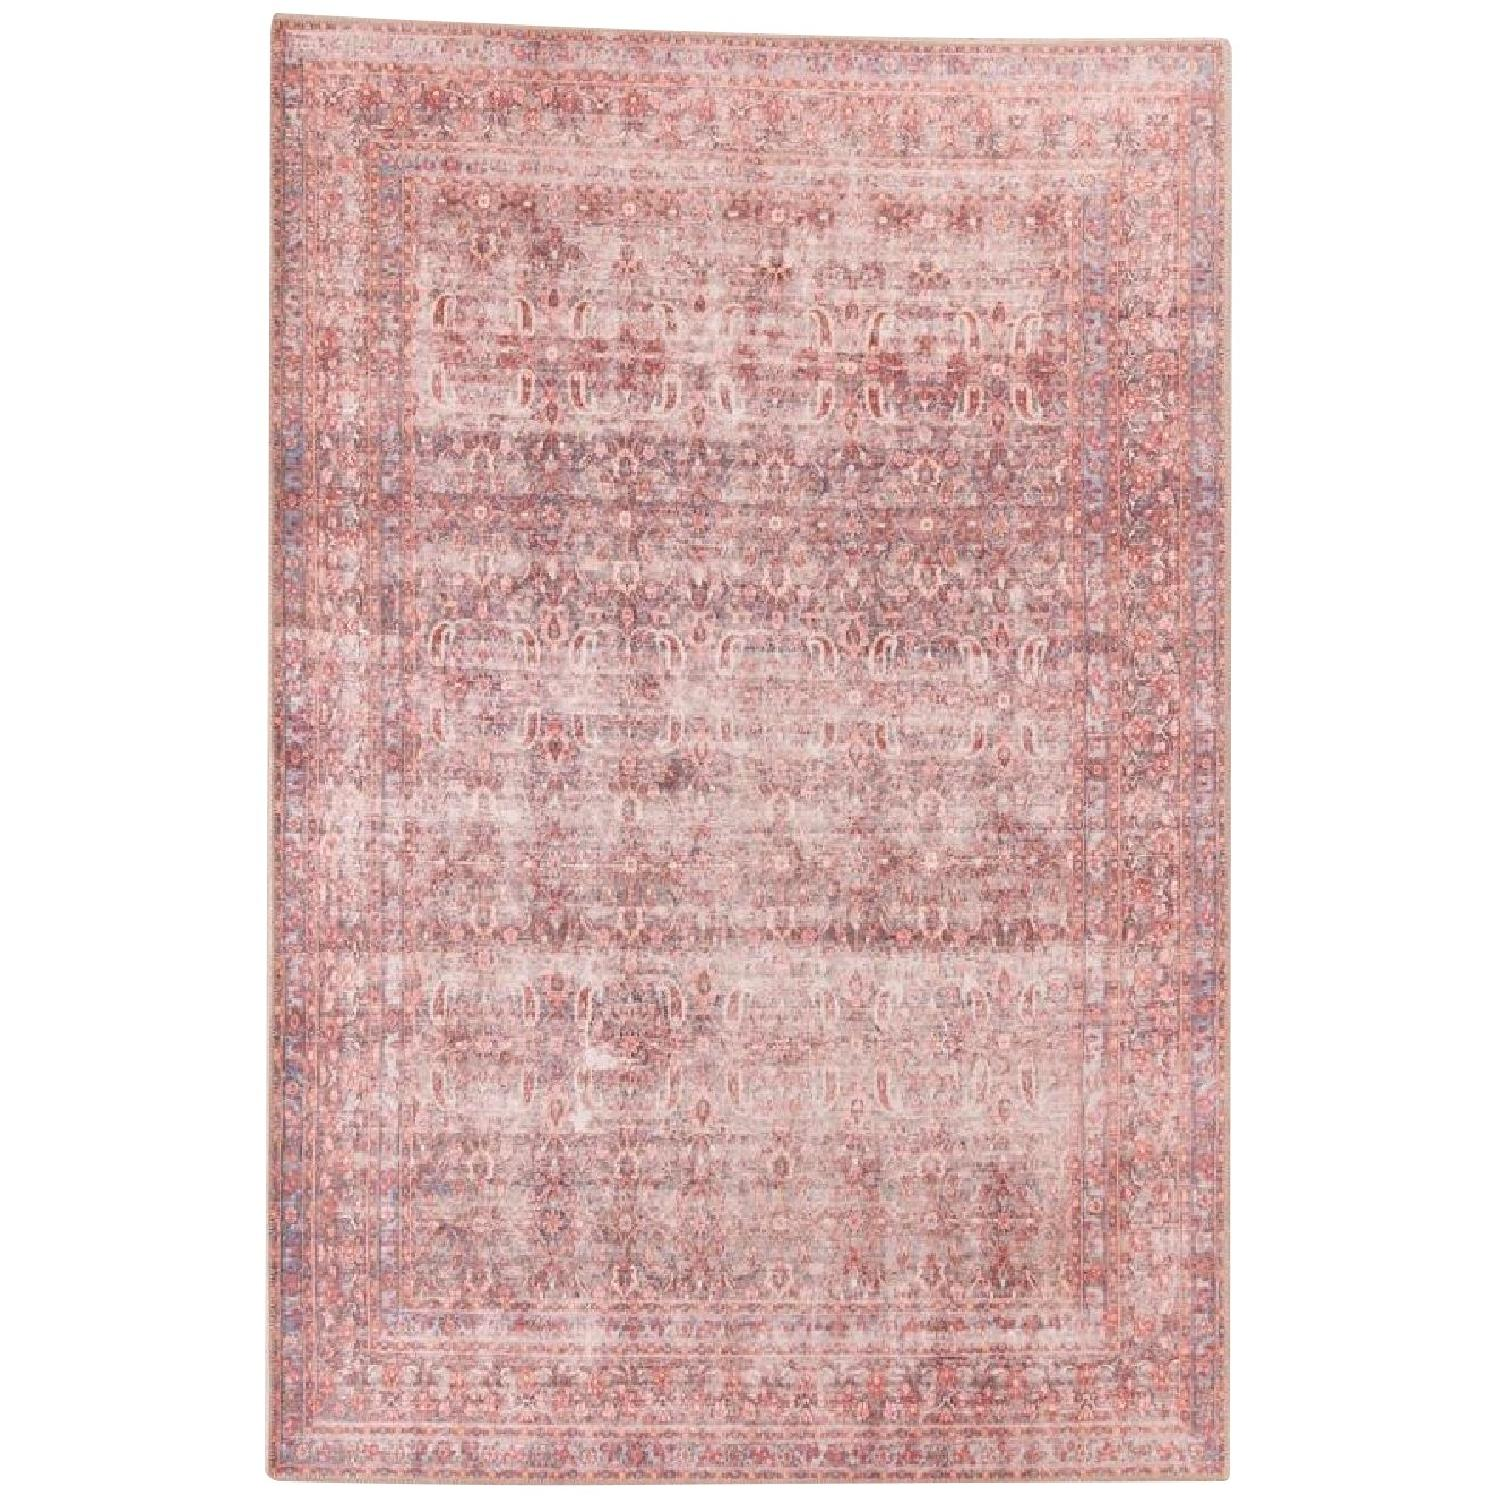 Urban Outfitters Mable Printed Rug - image-0